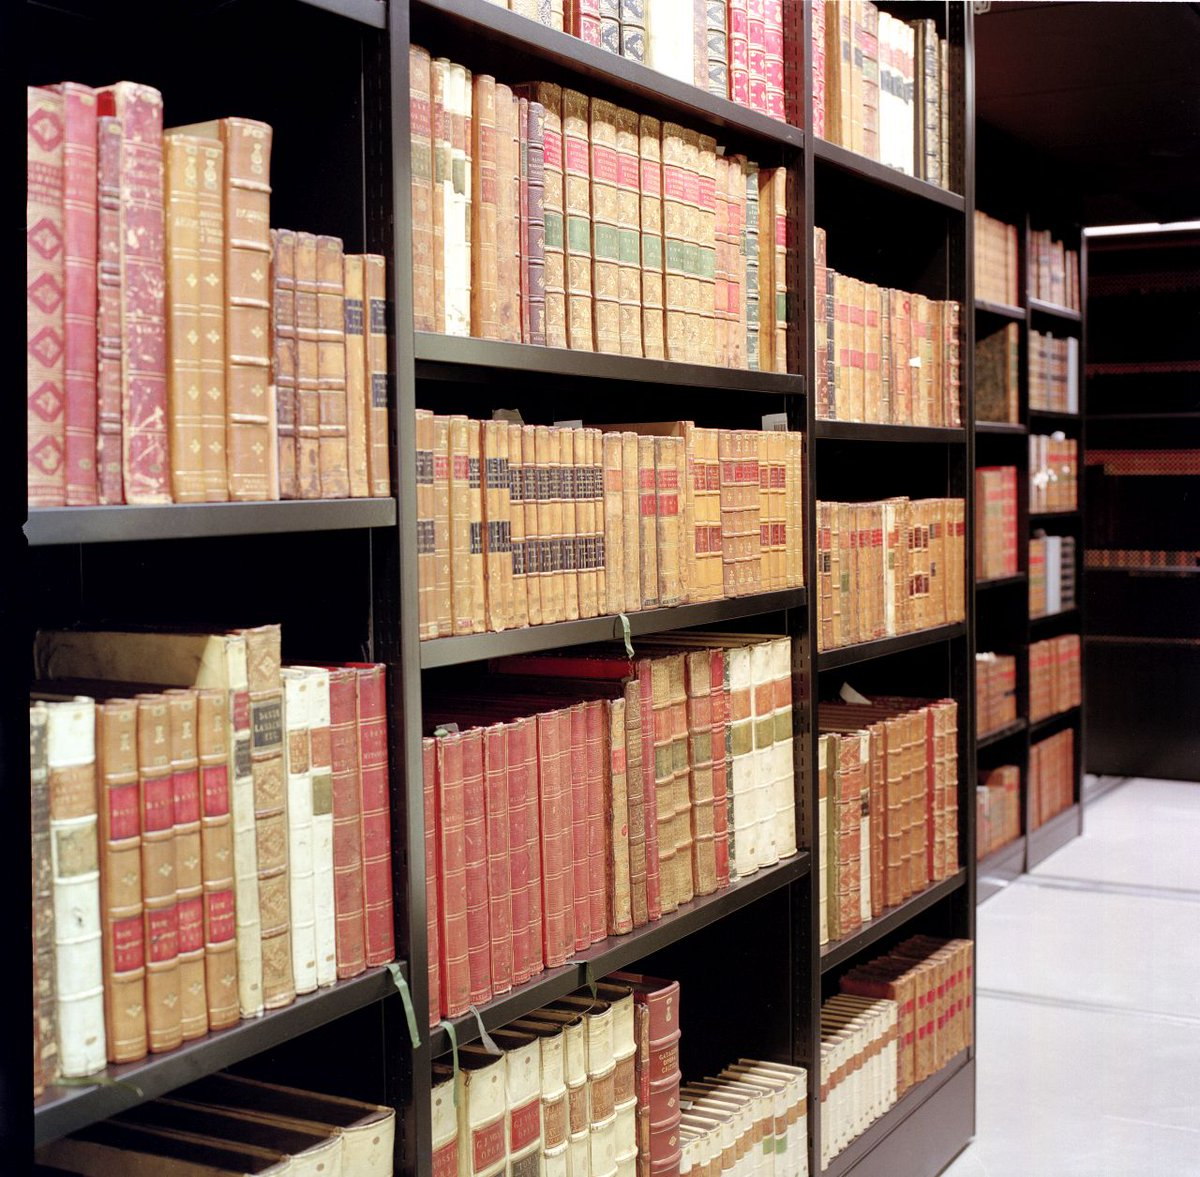 Our 'Directory of Western printed heritage collections' @britishlibrary provides information about books & printed items inc.: thematic and subject composition; distinguishing features; provenance; specialist catalogues; shelfmarks; bibliographical refs https://www.bl.uk/britishlibrary/~/media/subjects%20images/printed%20books/directory%20to%20western%20printed%20heritage%20collections.pdf…